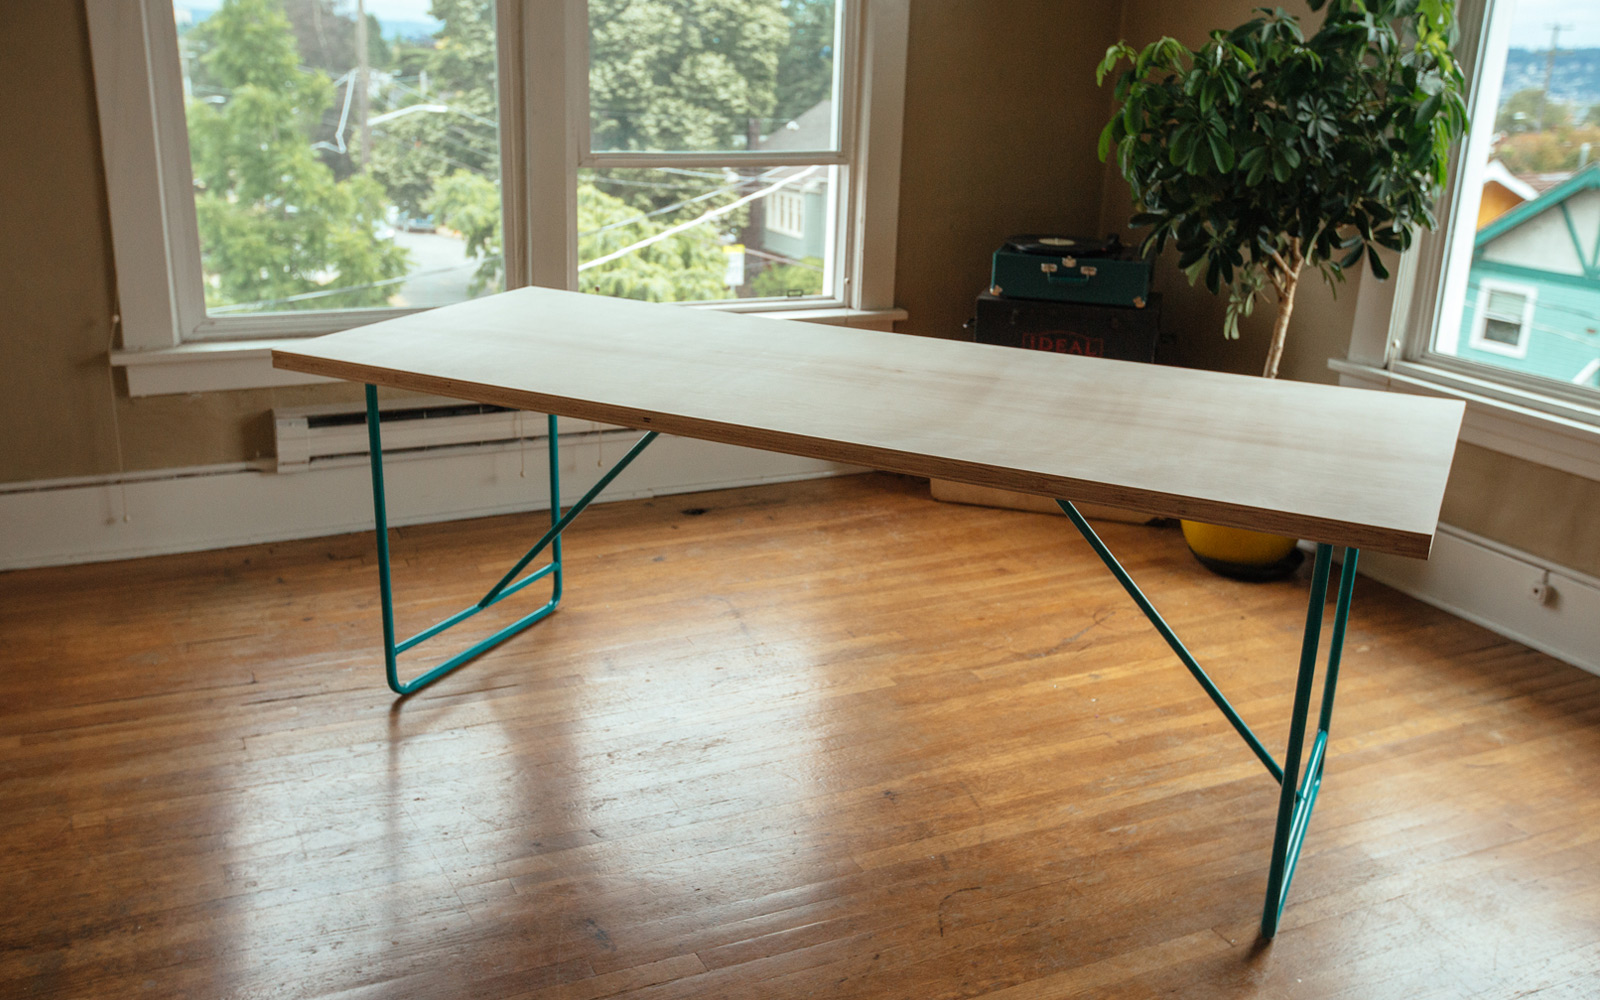 Dunn DIY Seattle WA Dining Table 21